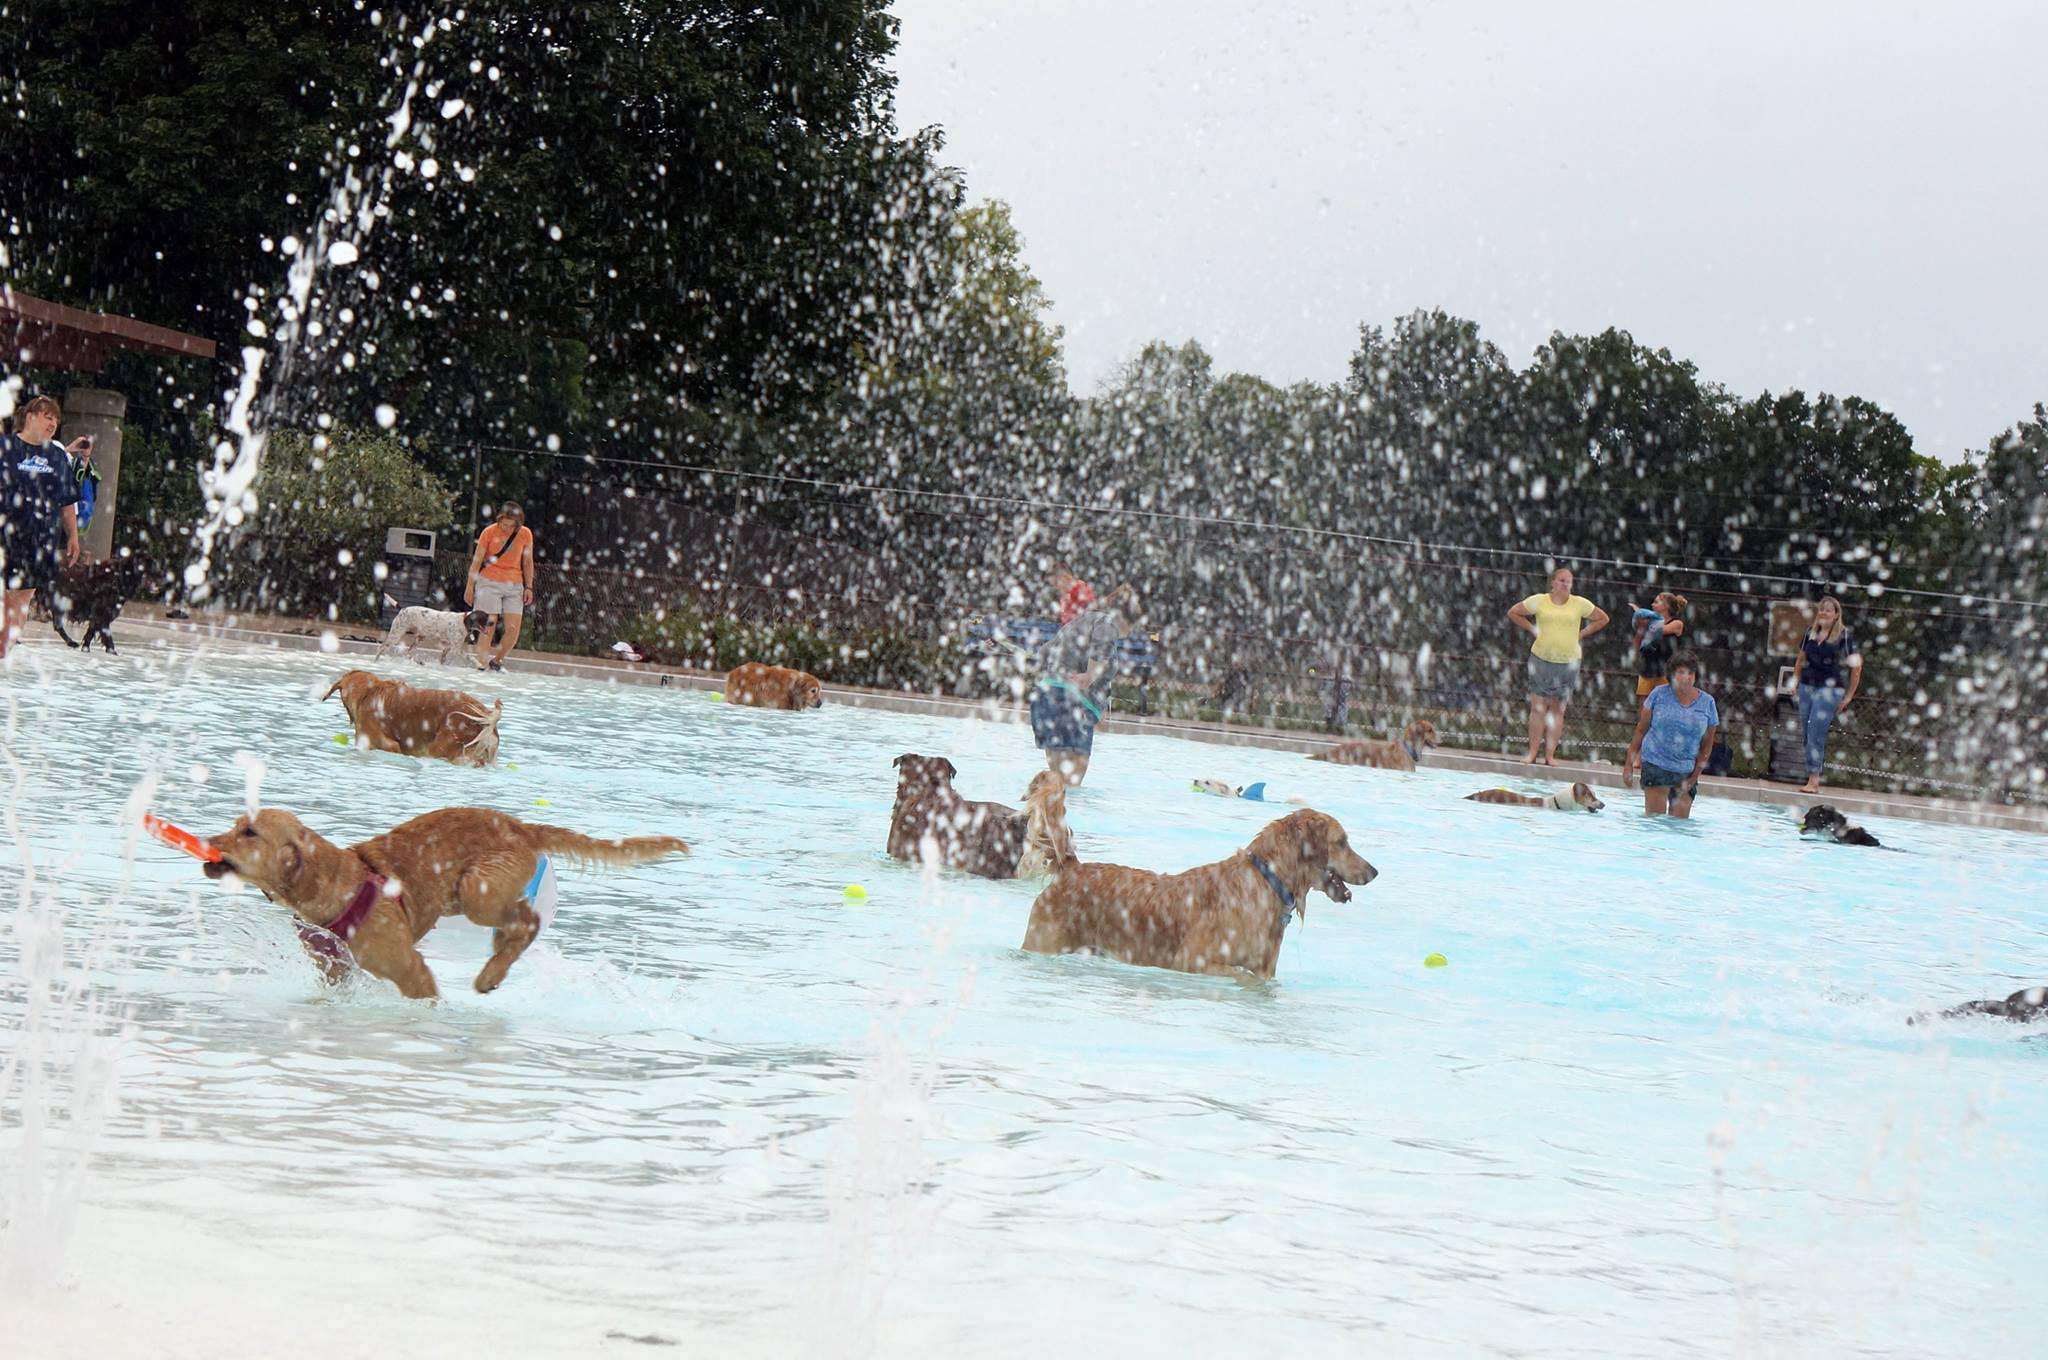 Grand Rapids Parks & Recreation hosted Wag 'n' Wade in 2017.